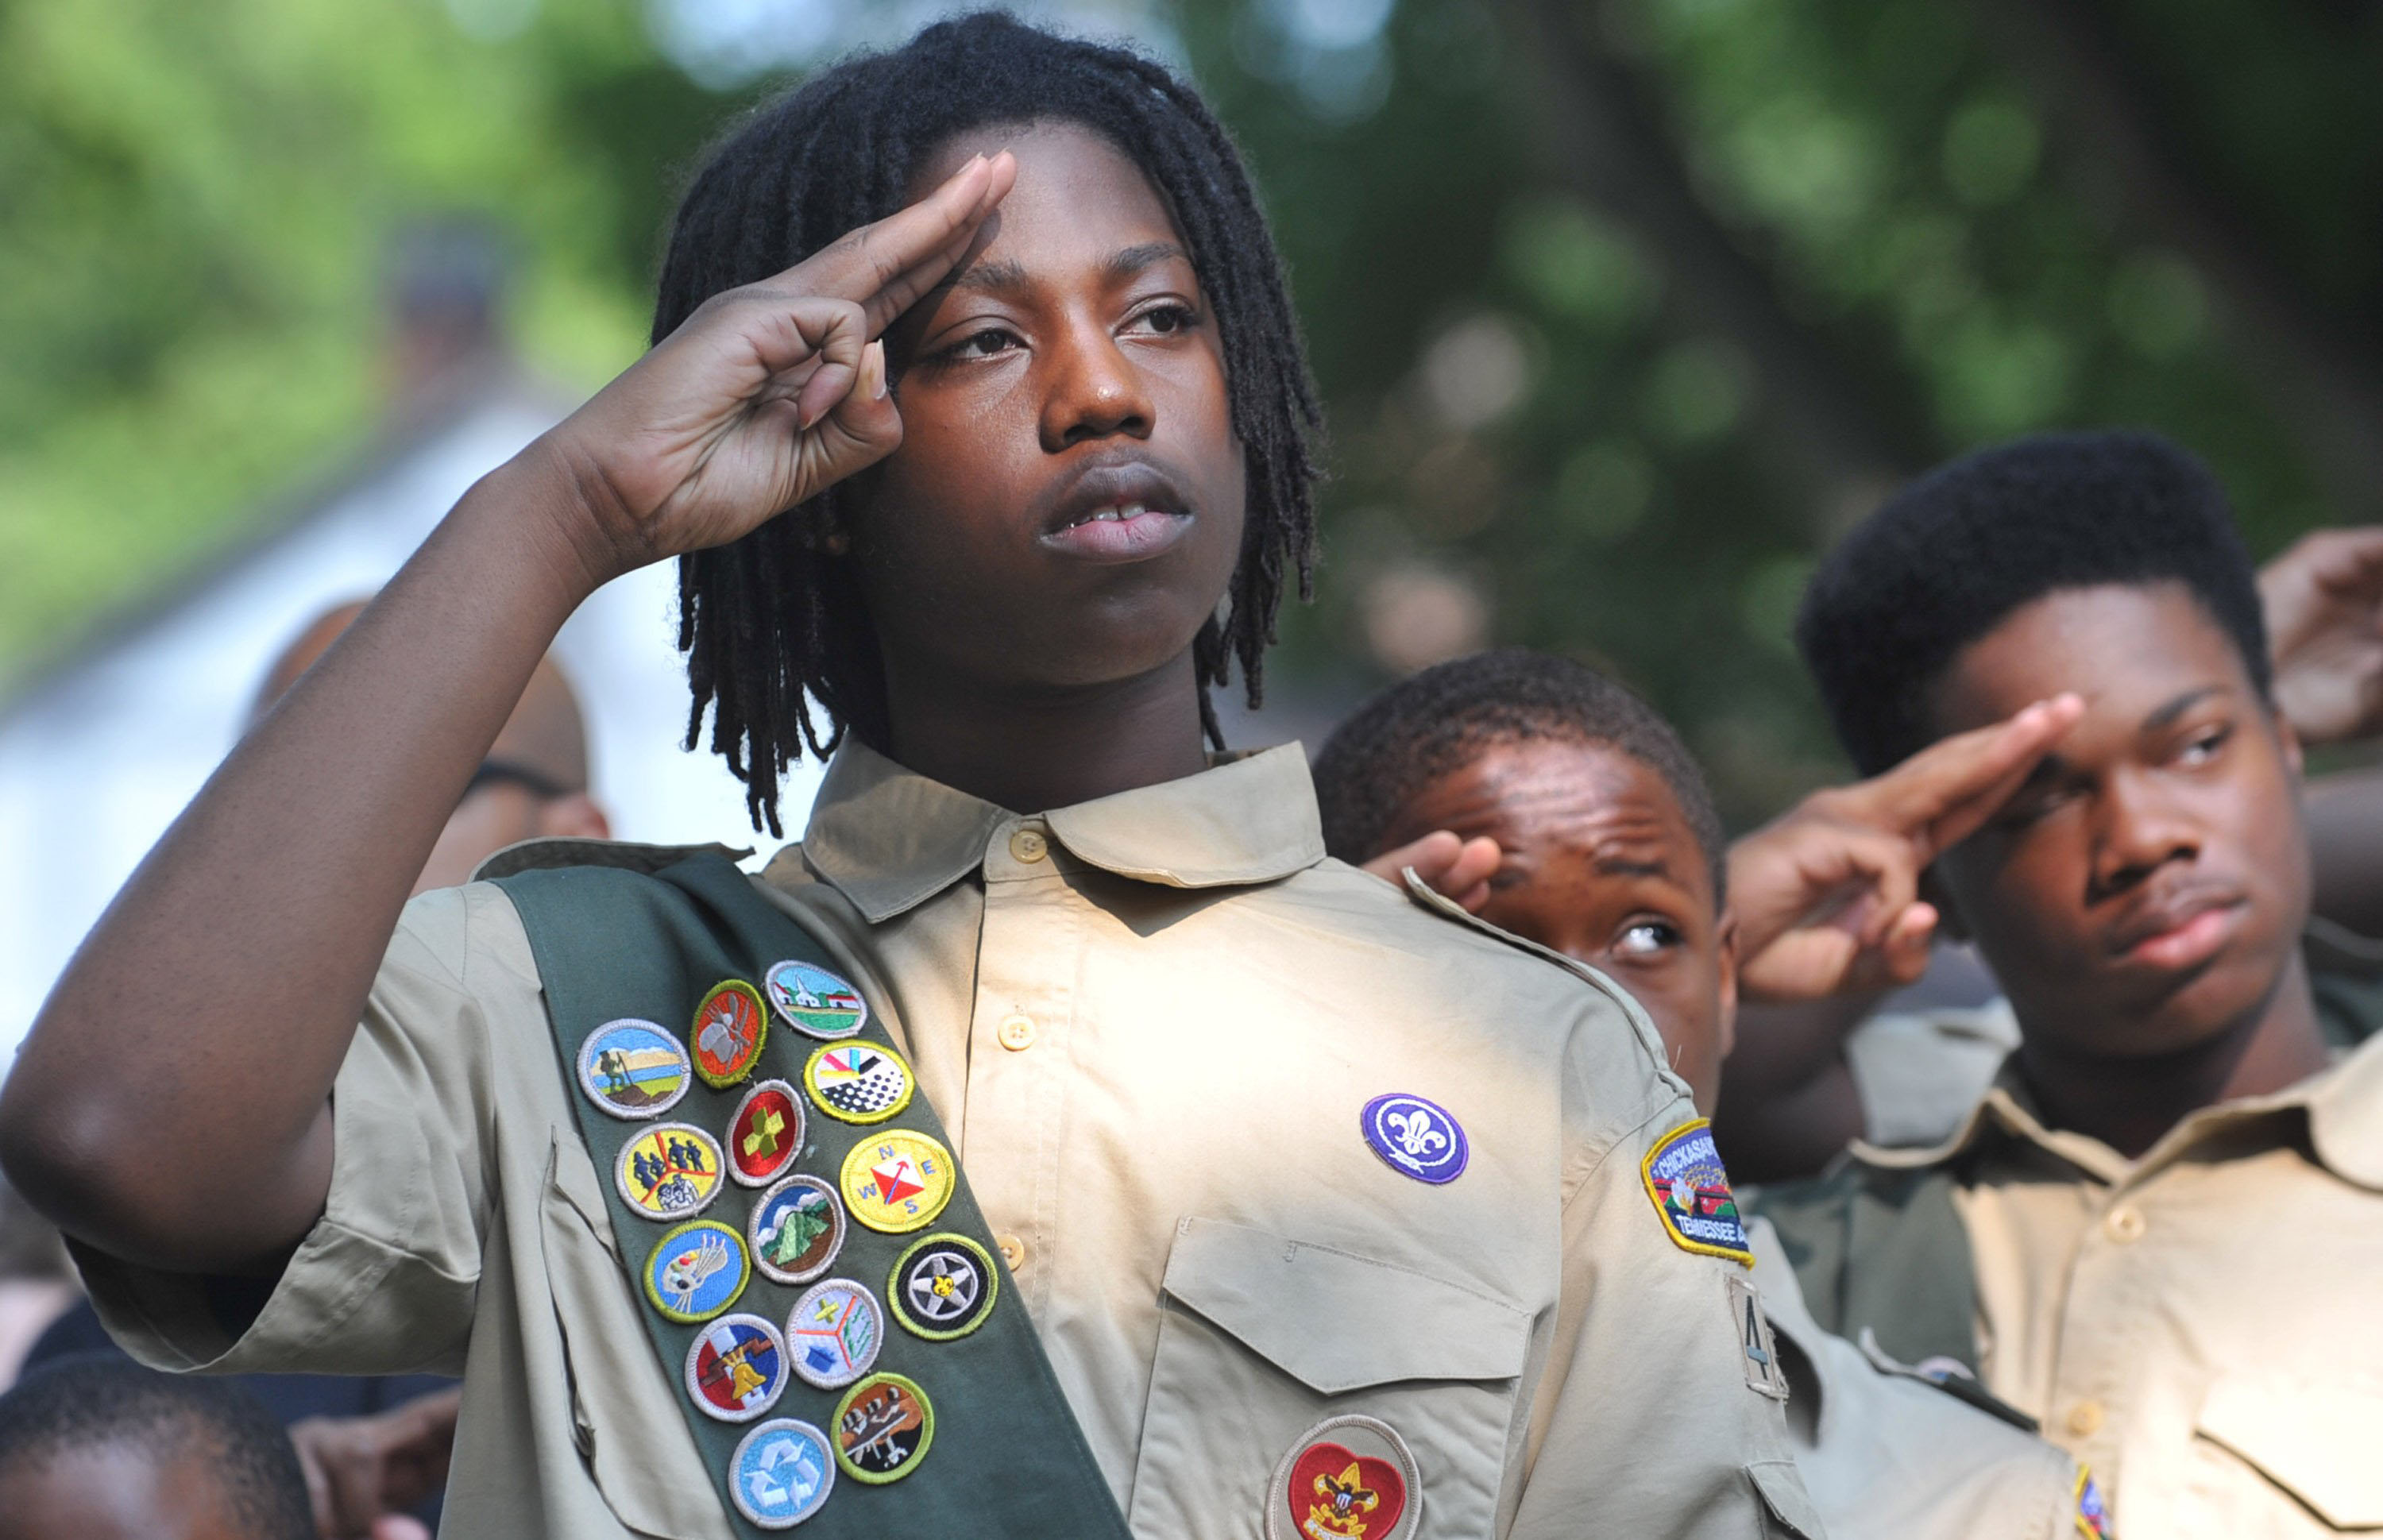 Stevon Spears, 17 and members of Boy Scout Troop 445 salute the American flag during the Memorial Day observance ceremony at the Memphis National Cemetery in Memphis, Tenn., on Saturday, May 26, 2012. (Chris Desmond/The Commercial Appeal)